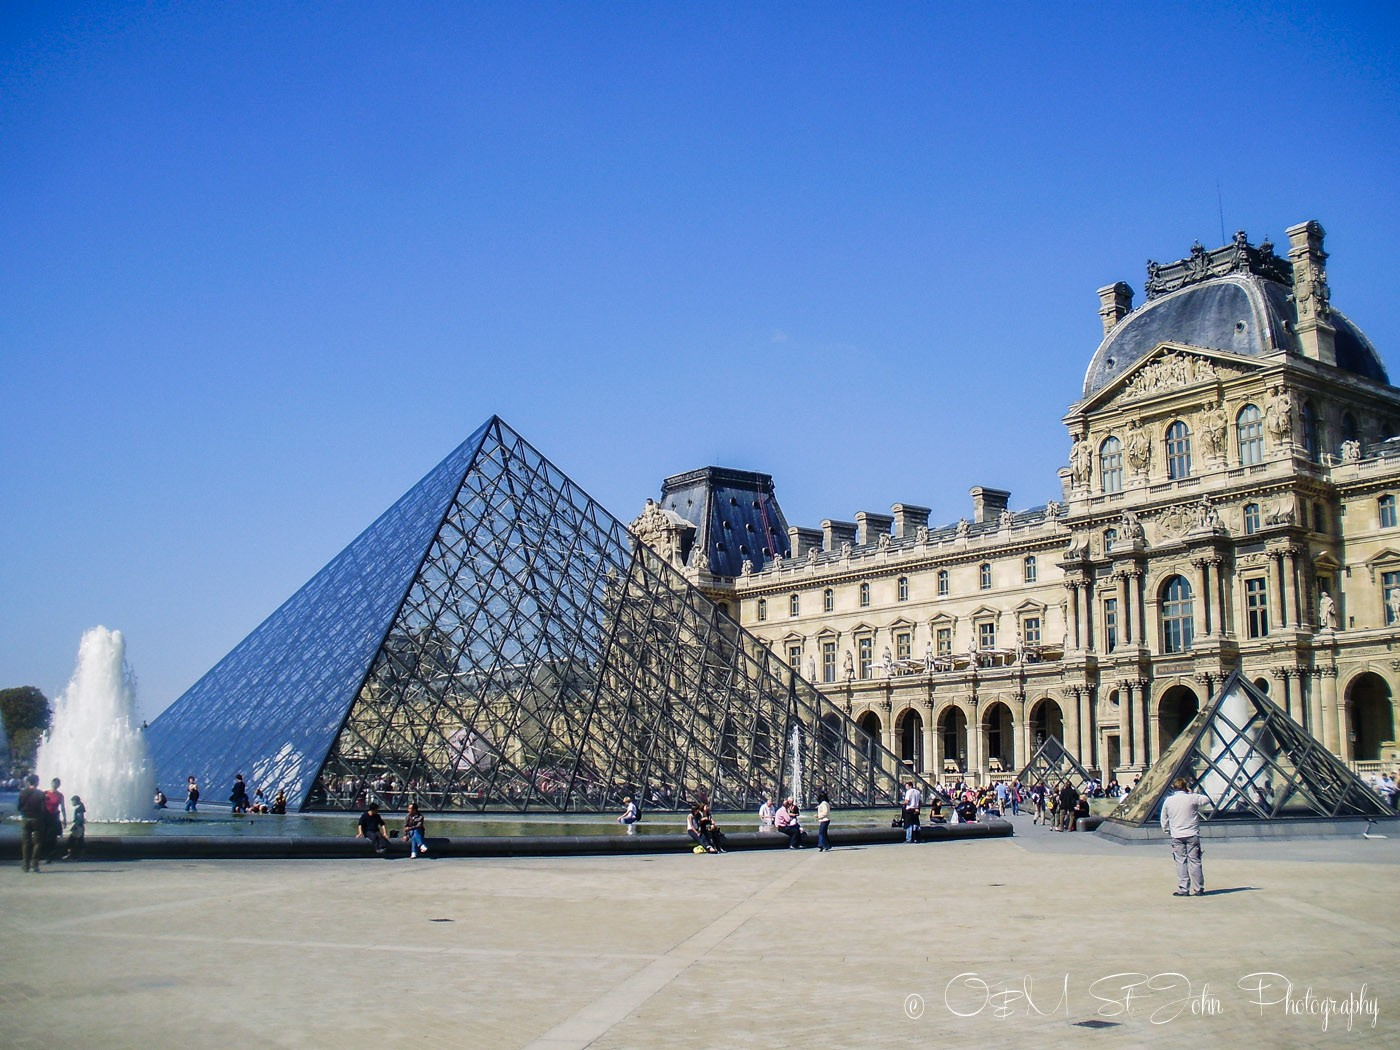 The Louvre. Paris. France. Europe